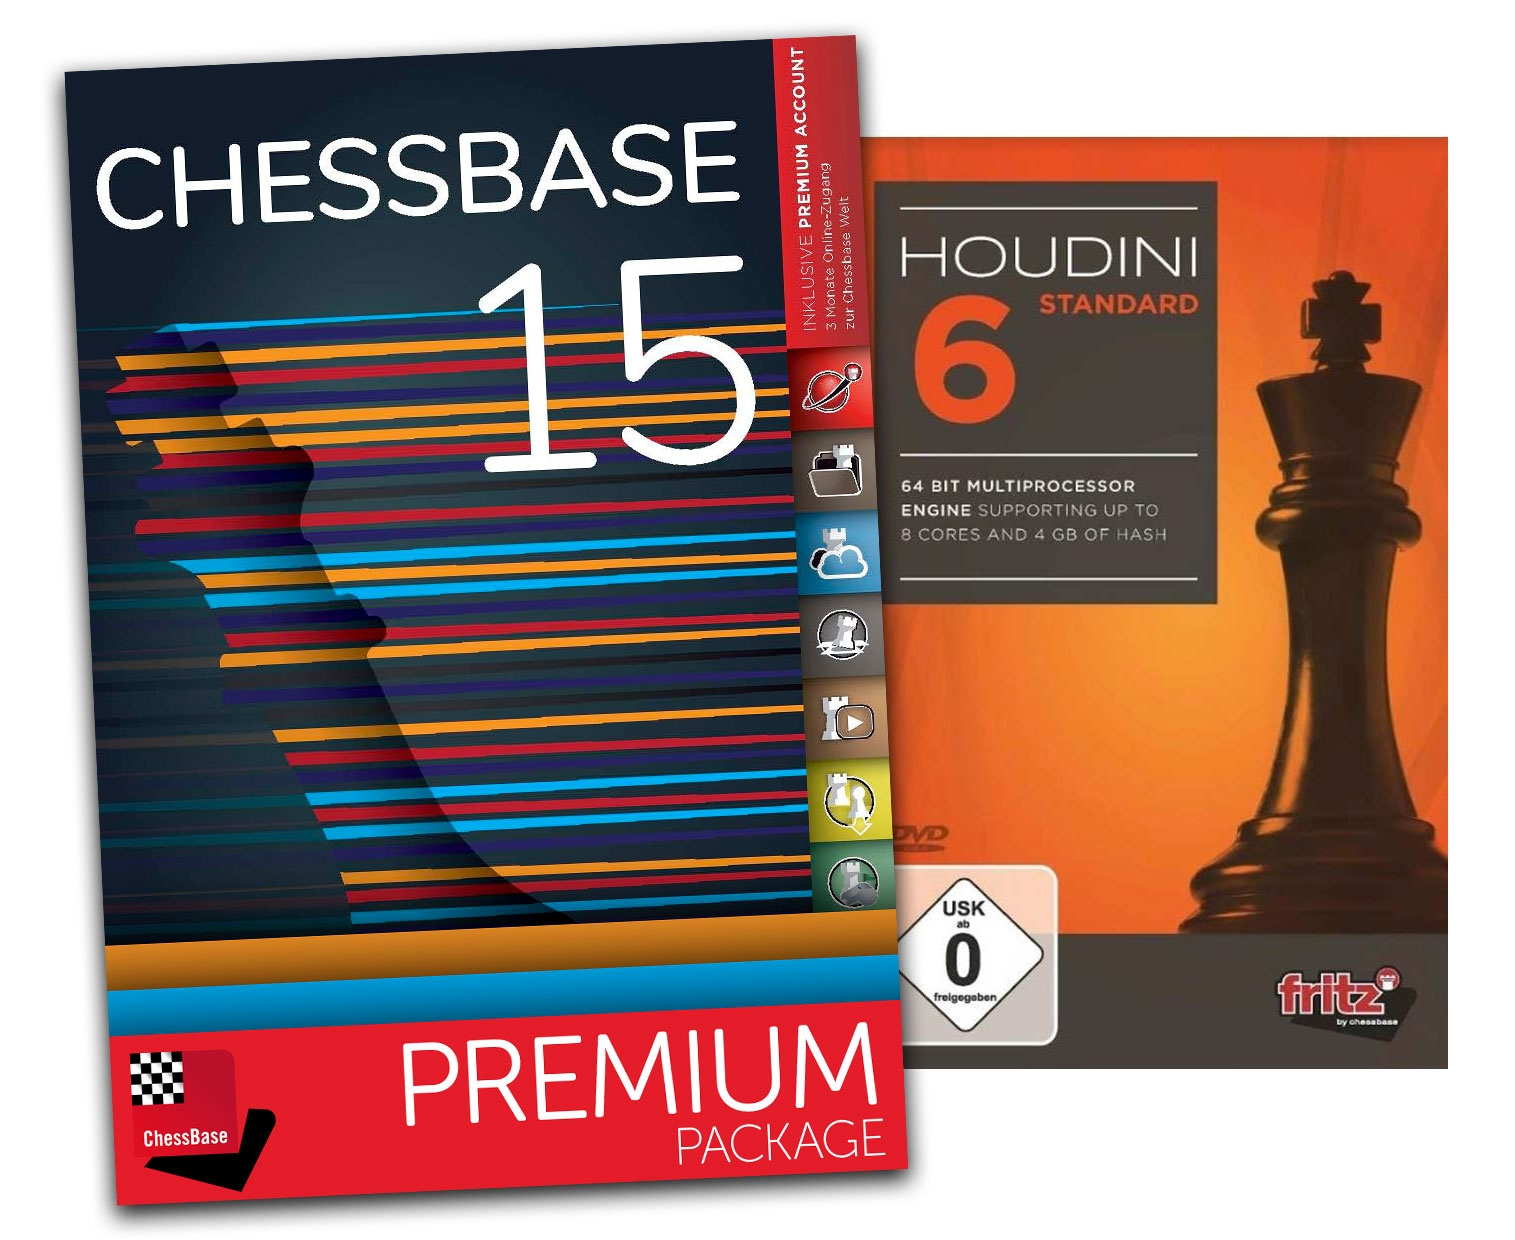 Details about Houdini 6 Standard and ChessBase 15 Premium - Bundle Chess  Software